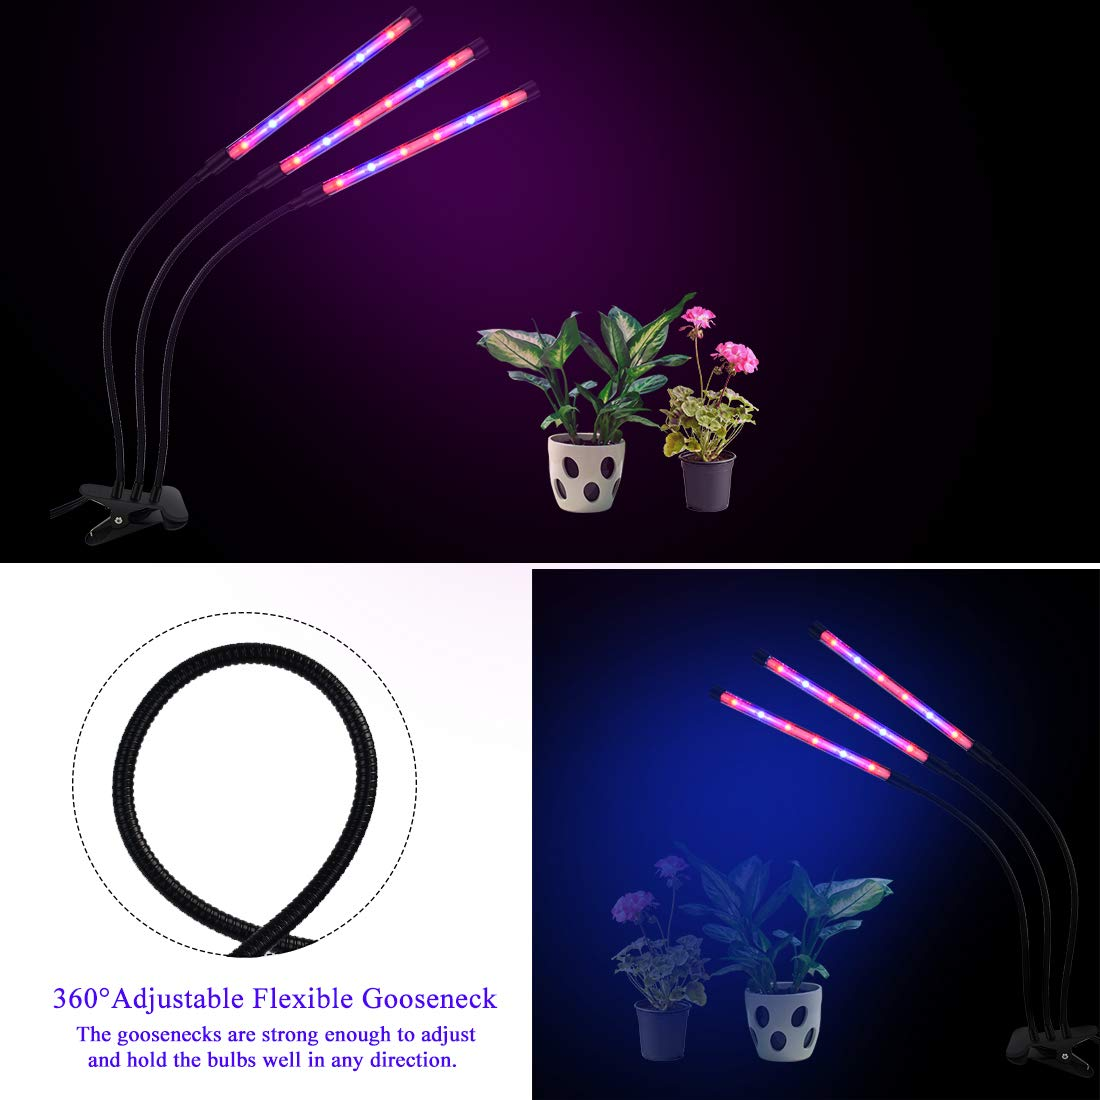 KKTOP 36W Grow Light, 3 Head Grow Light Auto-Control ON/Off 4/8/12h Timing Modes 8 Dimmable Levels Growing Lamp for Indoor Plants, Hydroponics, Greenhouse, Gardening, Office